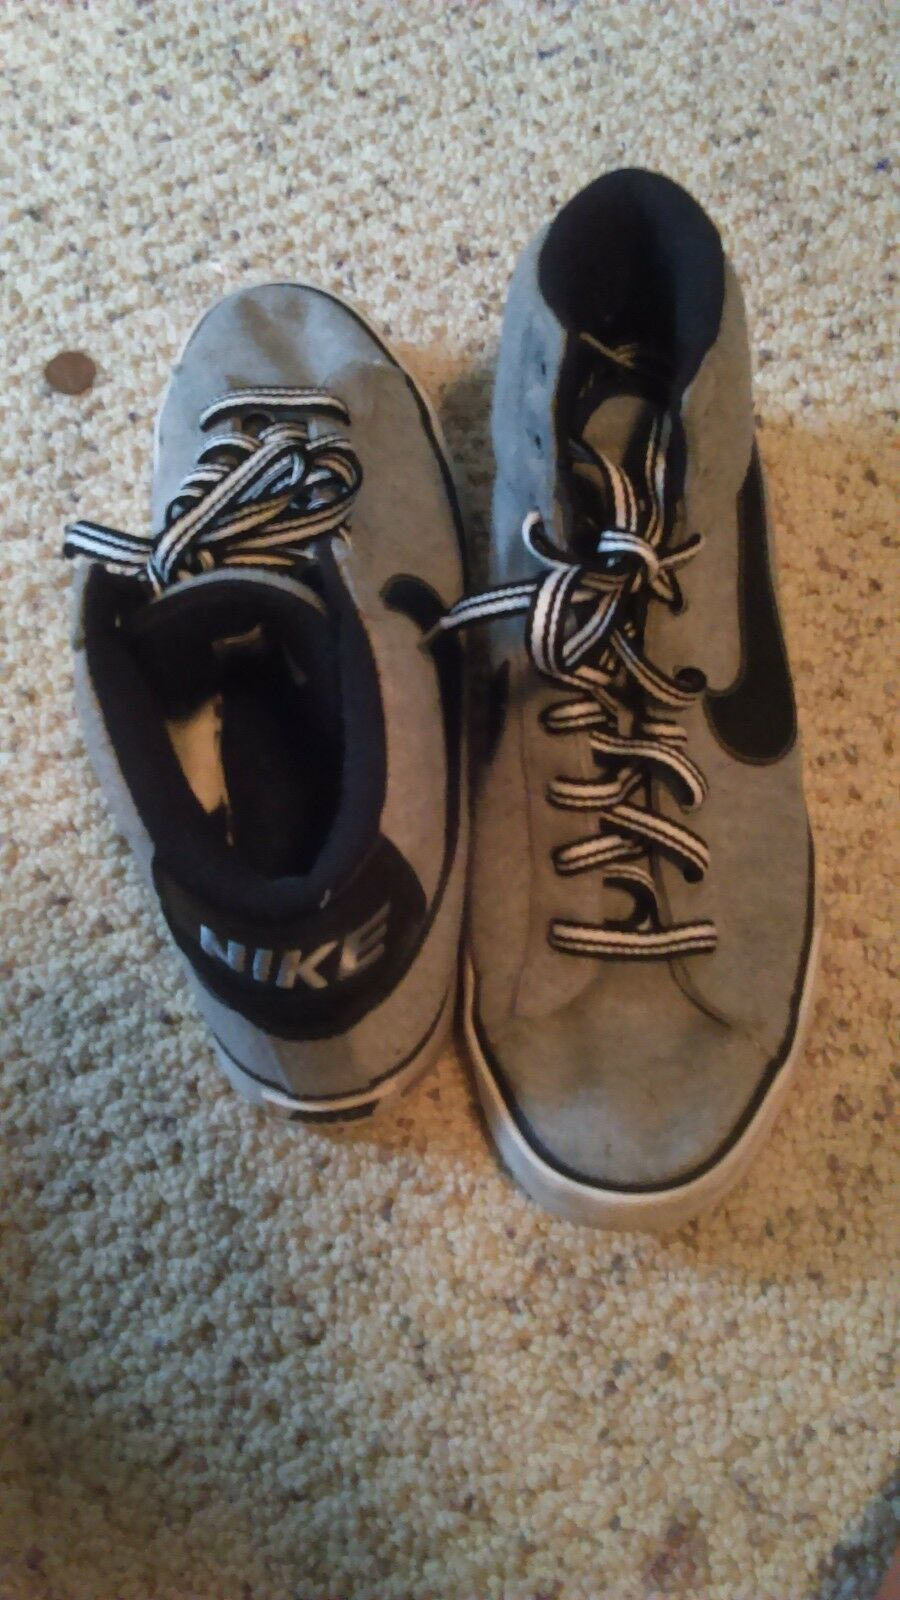 nike grey and black size 10 men good condition Cheap women's shoes women's shoes